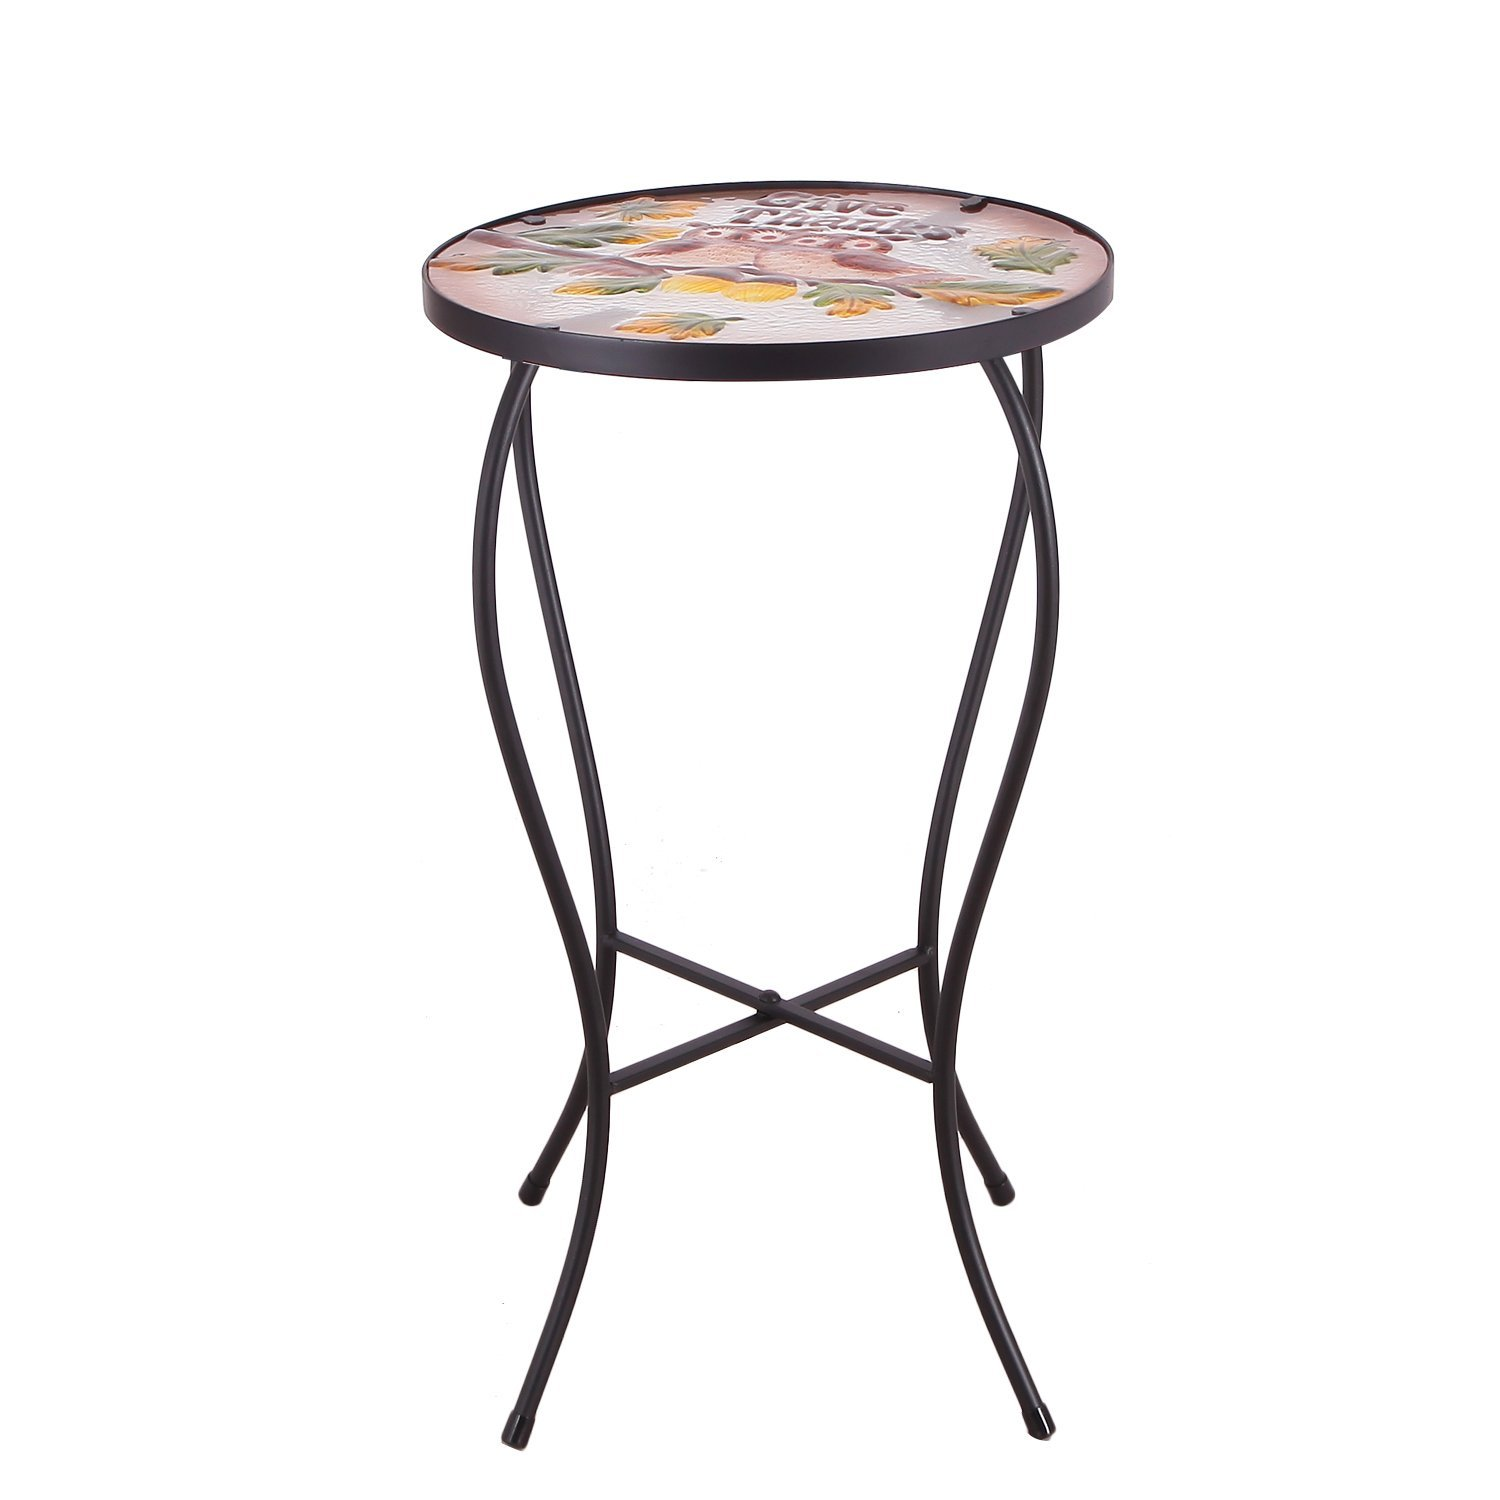 homebeez couple owes mosaic round plant stand accent ryder small table side black color curve tube legs outdoor indoor height inches garden smoked glass coffee tablecloth white